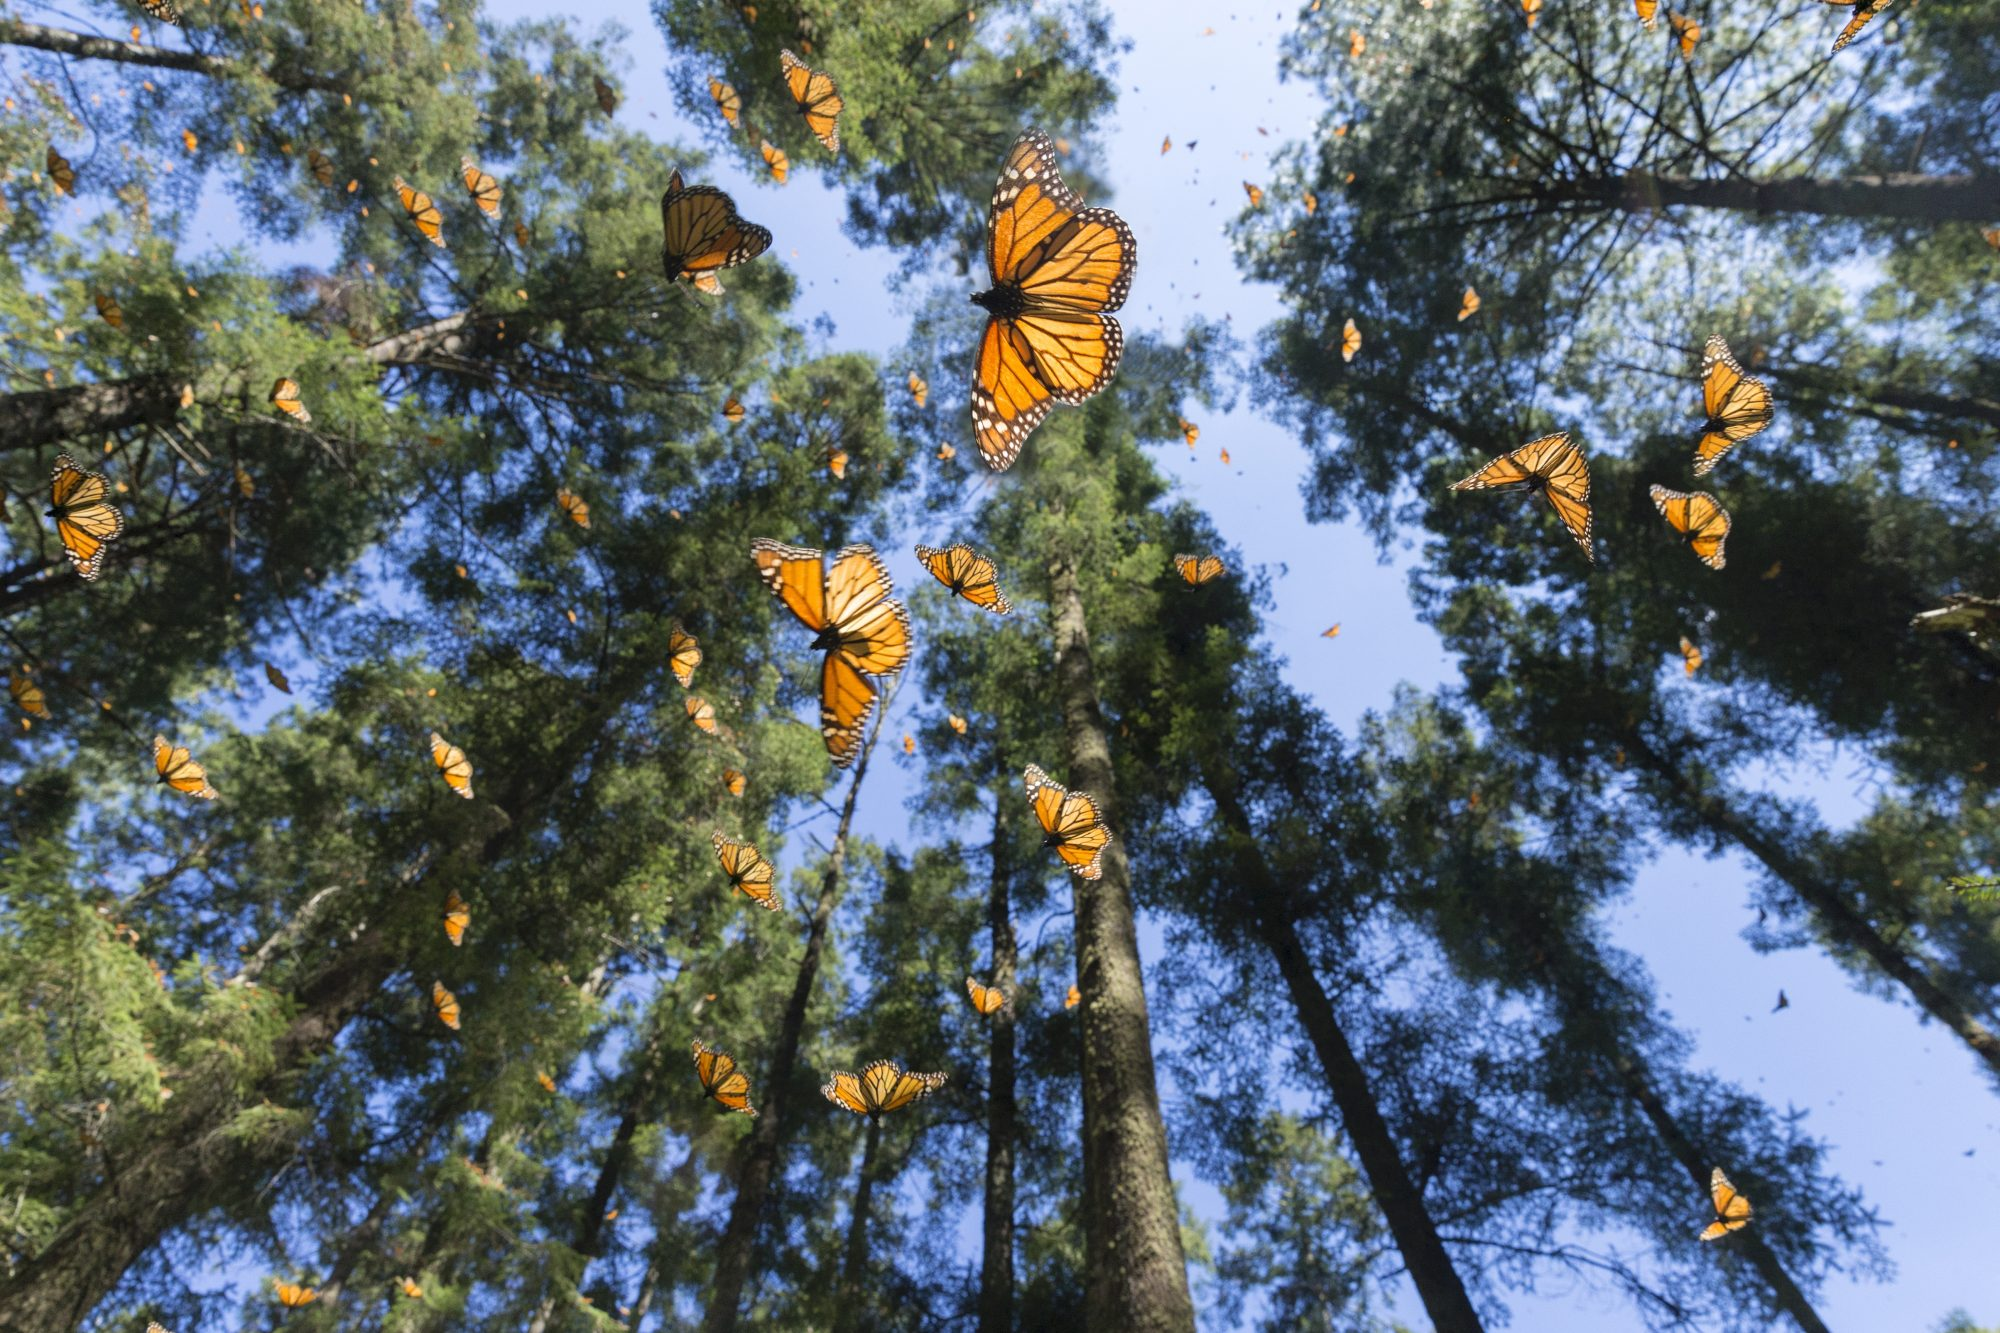 butterflies circling the air in a forest